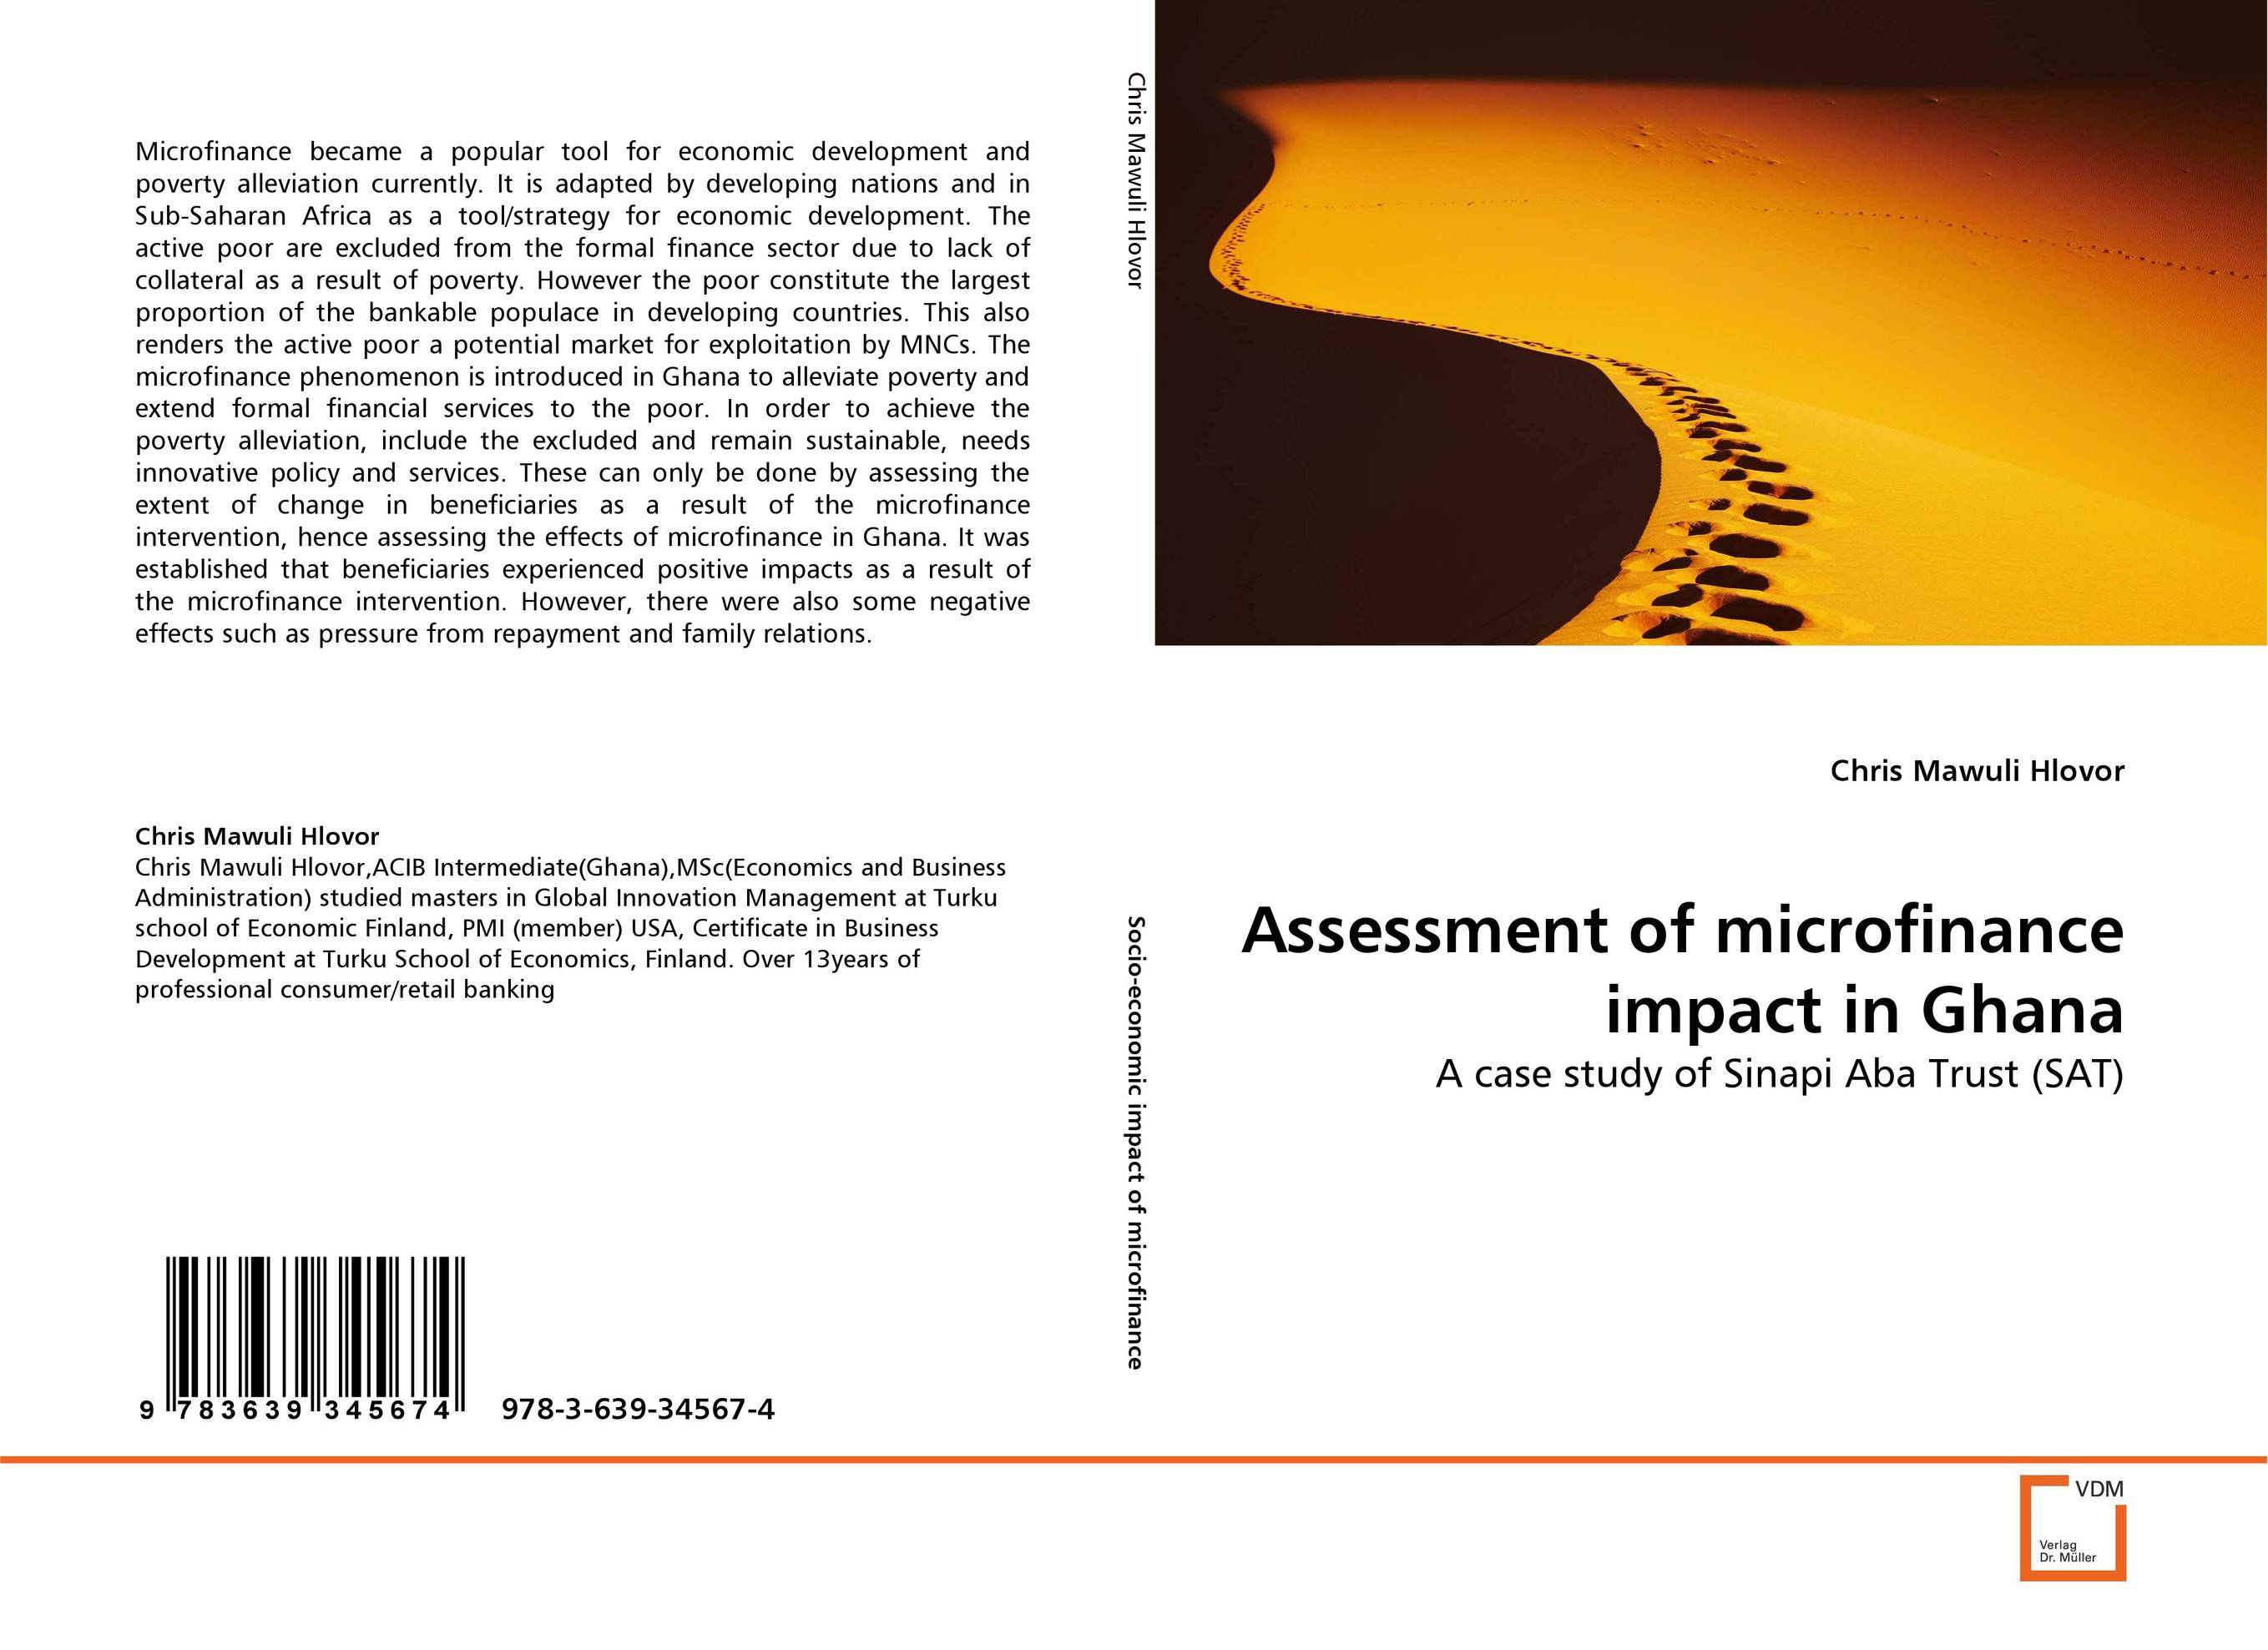 Assessment of microfinance impact in Ghana supervised delivery services in ghana